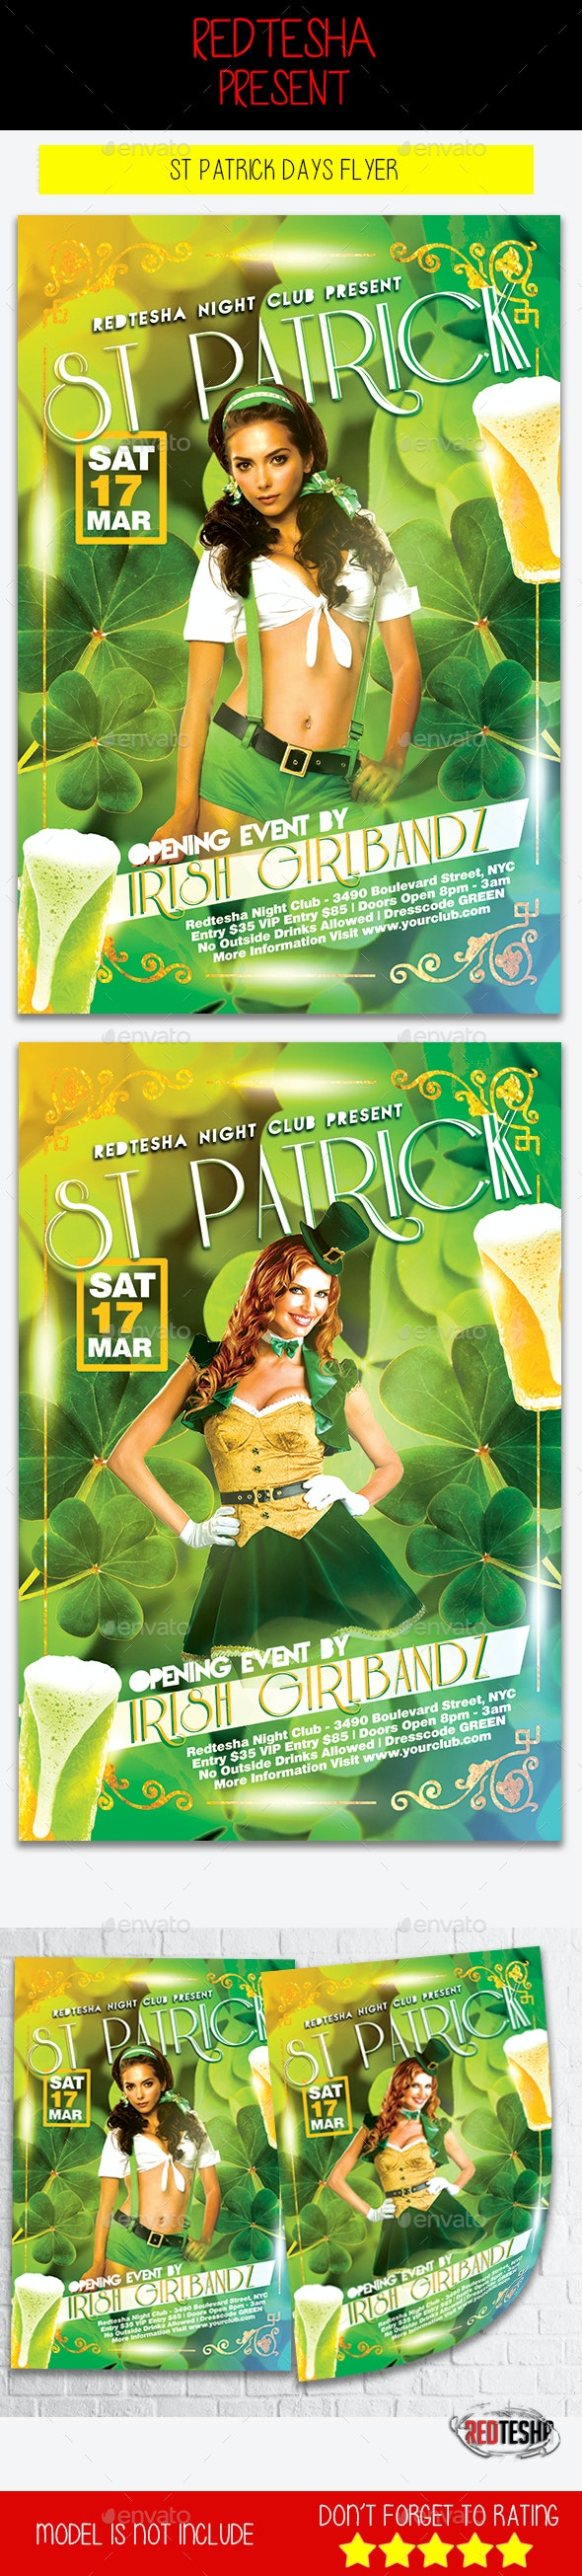 St Patrick Days Flyer - Clubs & Parties Events